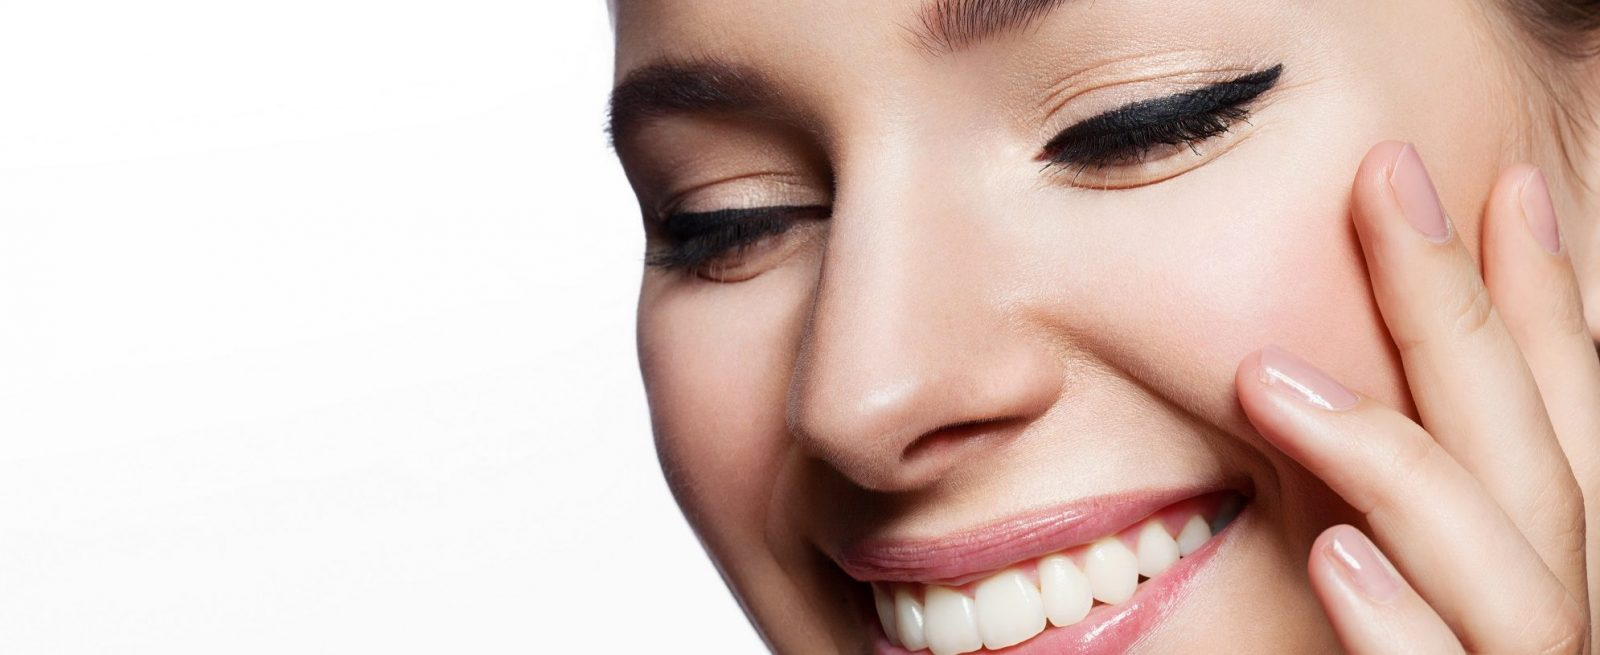 stock image of model smiling